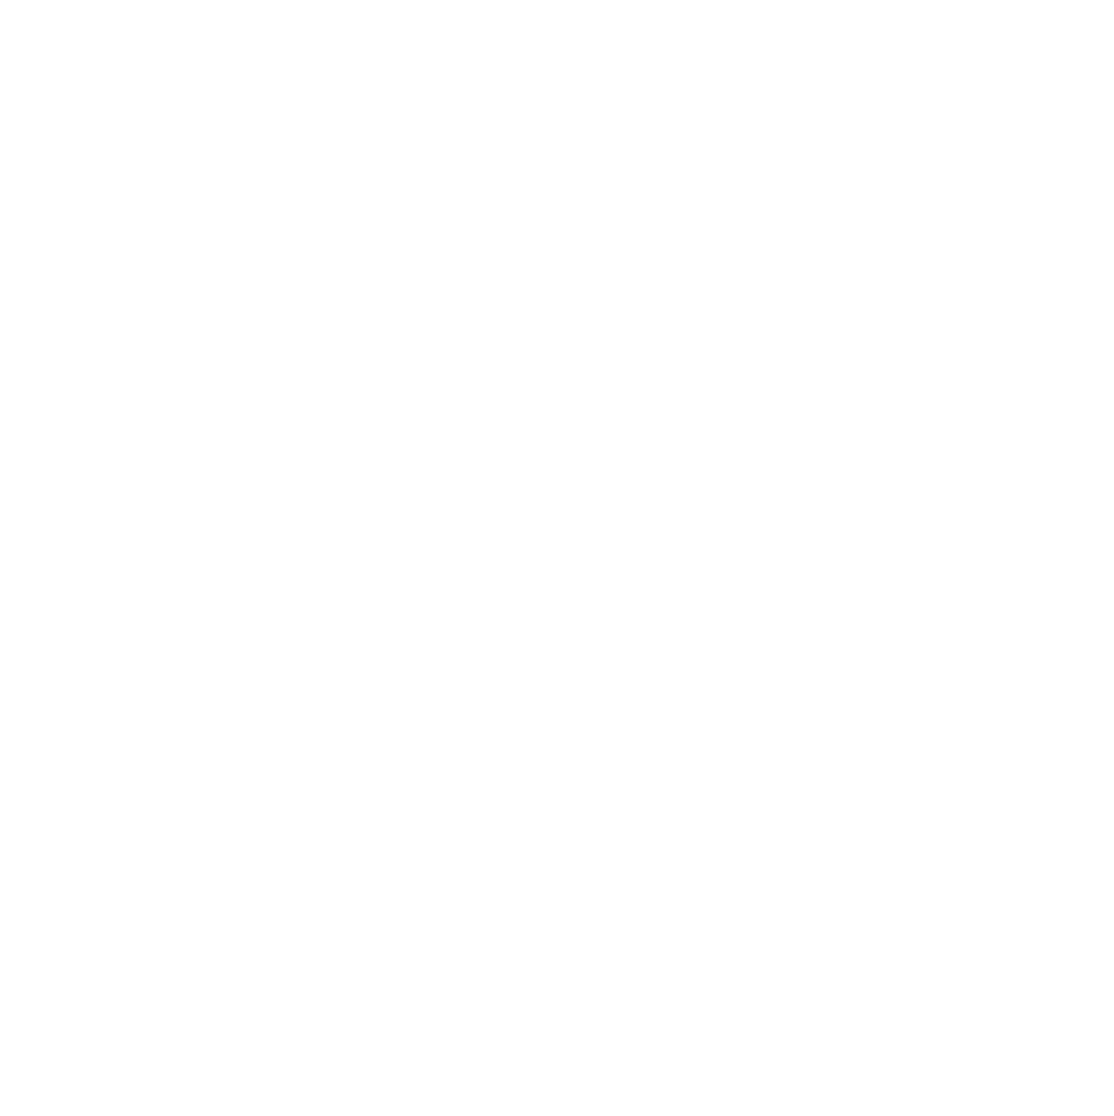 Shadwell's Restaurant